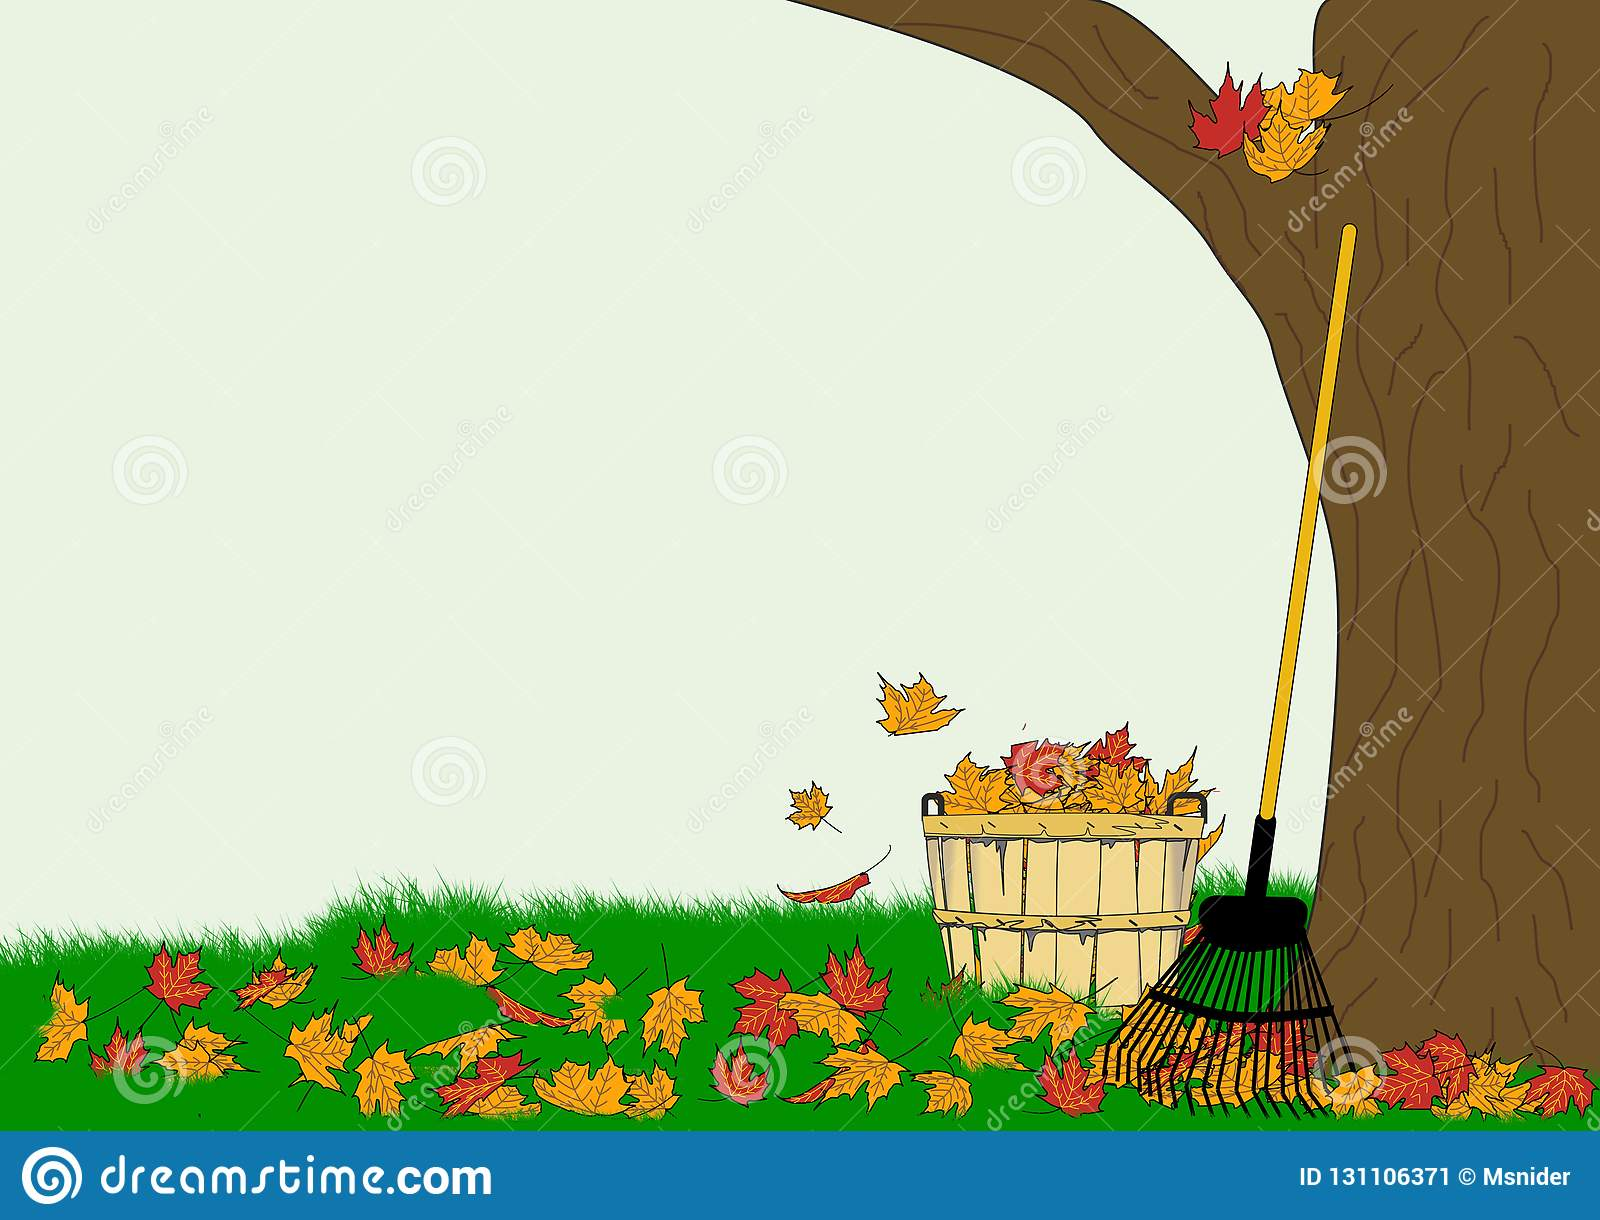 hight resolution of an illustration of a leaf rake and a bushel basket full of colorful autumn leaves on a background of a leaf strewn lawn and a large tree